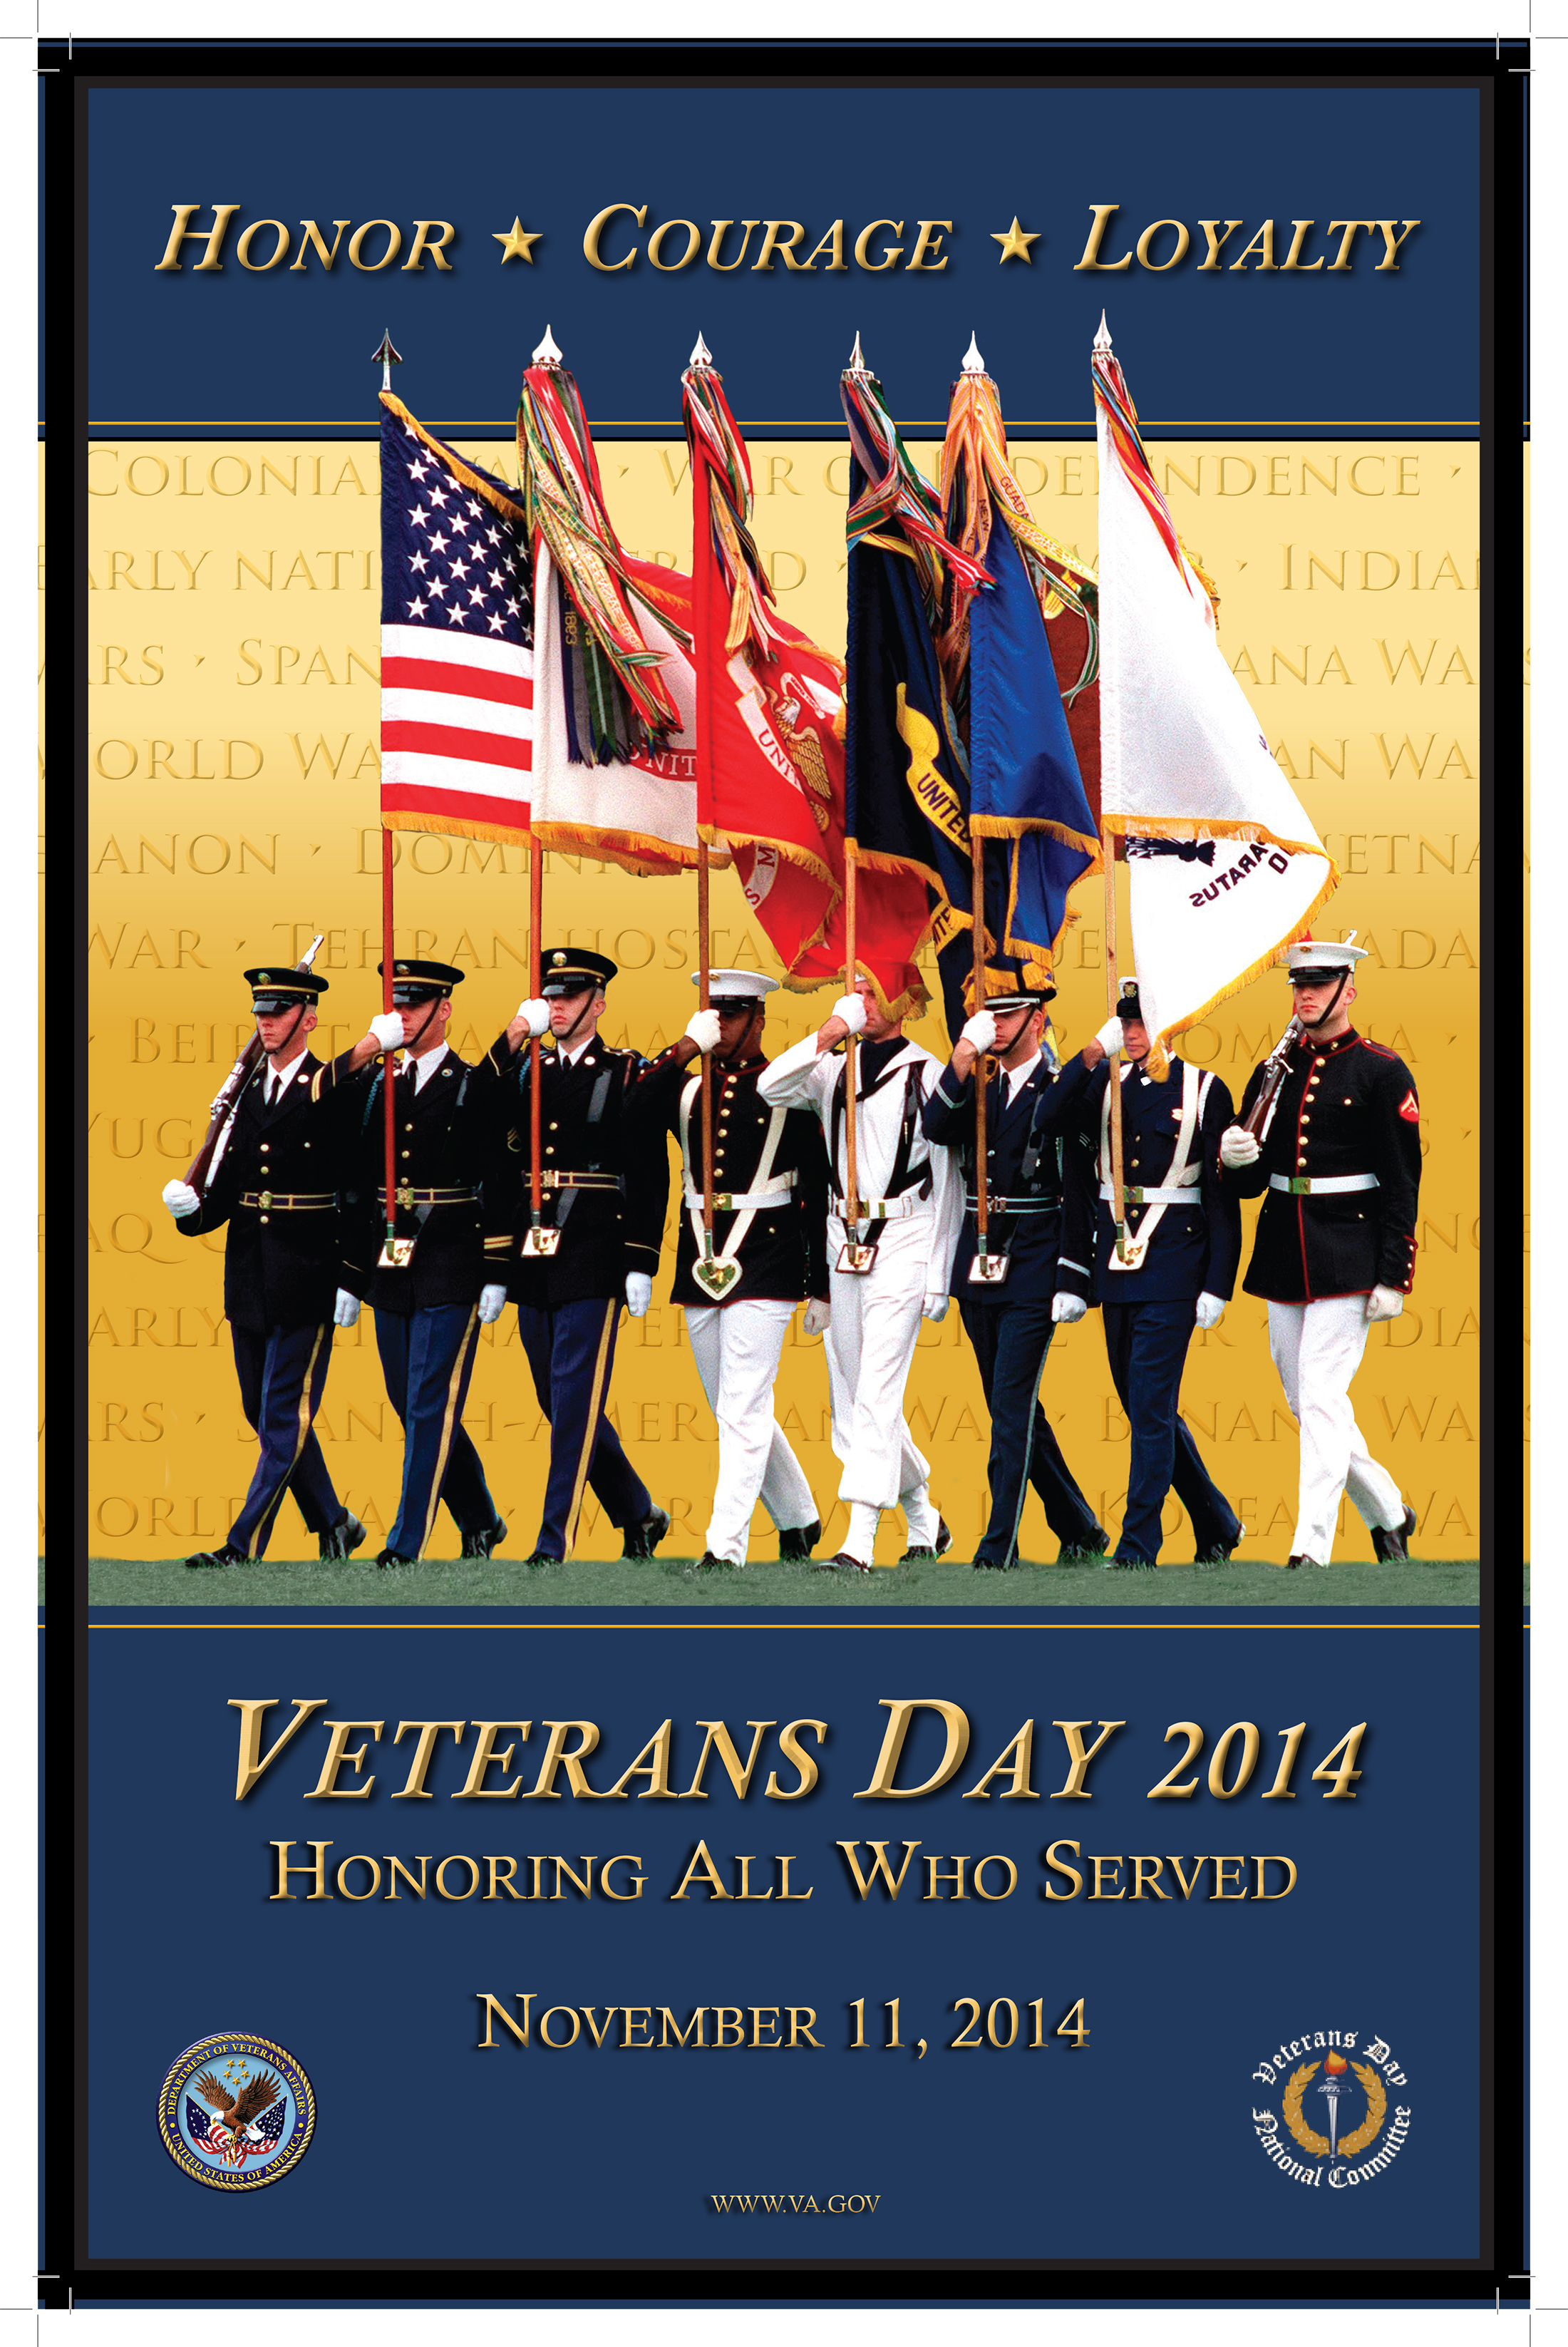 Veterans Day poster for 2014, from the U.S. Veterans Administration